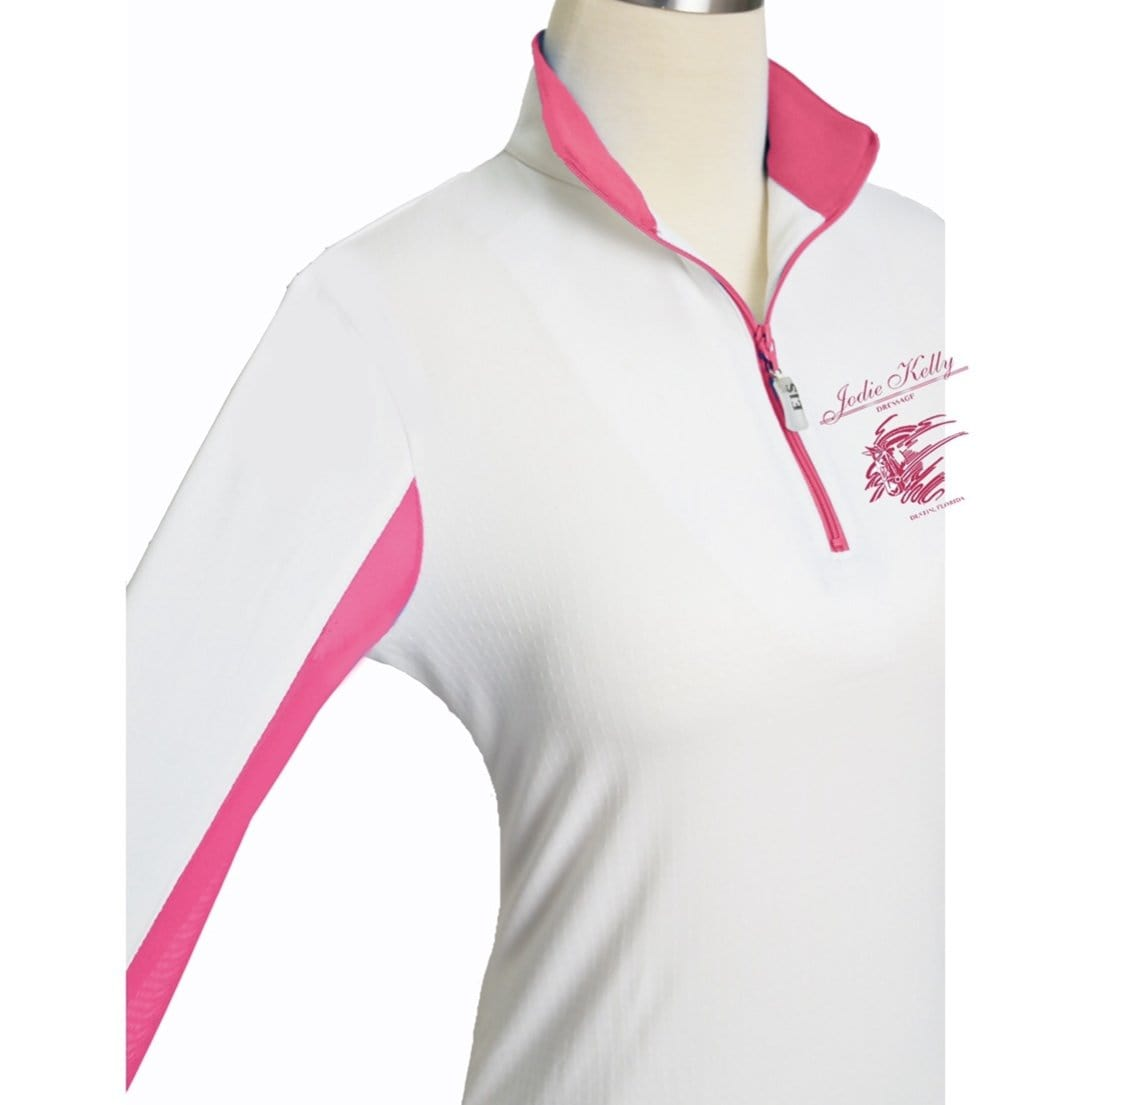 Equestrian Team Apparel Custom Team Shirts XSmall / White/Hot Pink Jodi Kelly Dressage White/Pink Women's Sunshirt equestrian team apparel online tack store mobile tack store custom farm apparel custom show stable clothing equestrian lifestyle horse show clothing riding clothes horses equestrian tack store